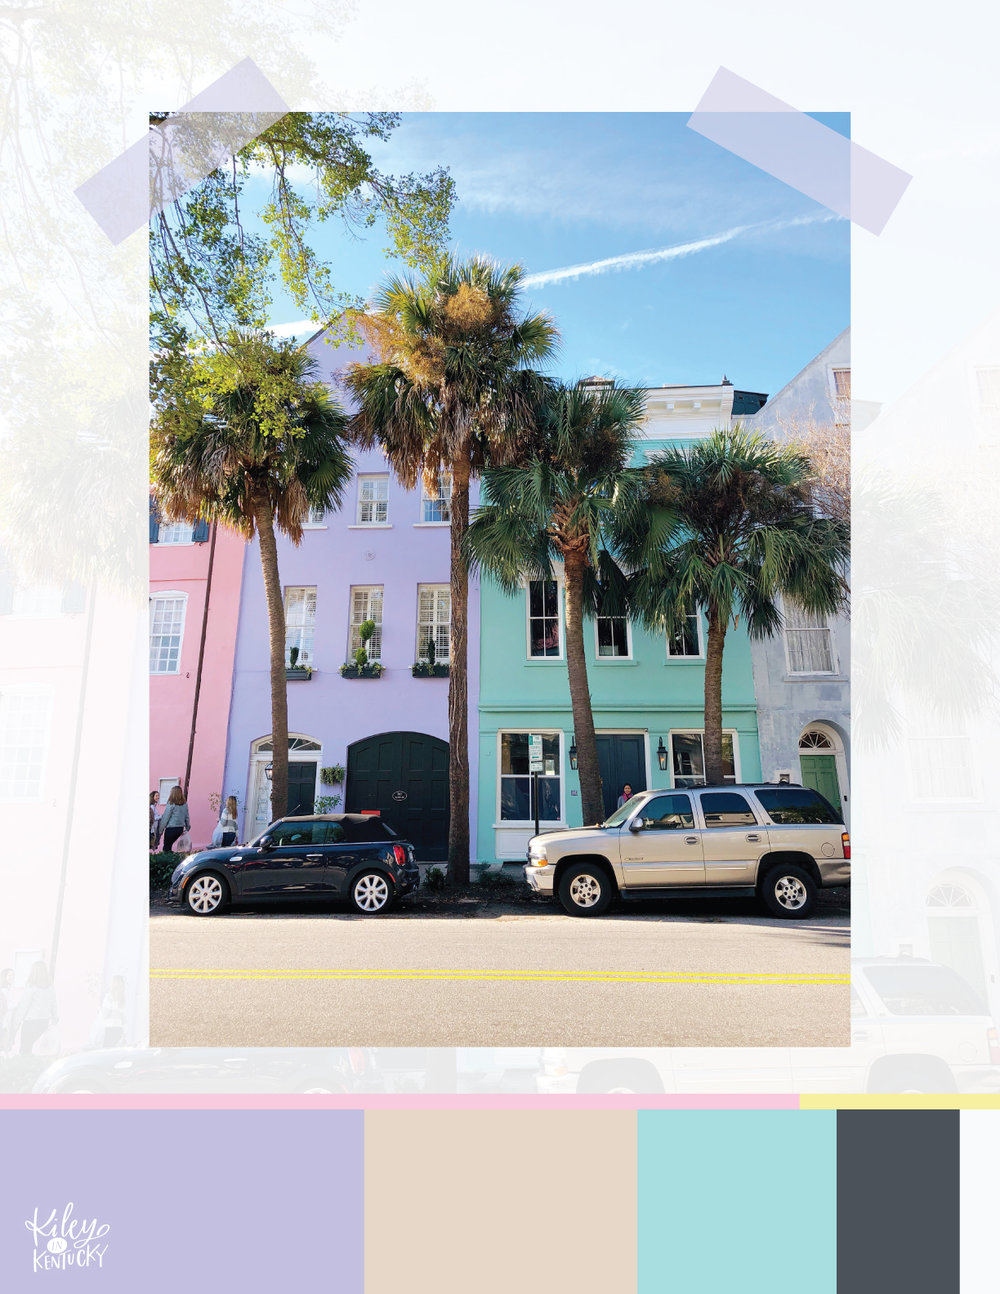 Rainbow row is a must-see for any color lovers out there! These houses are a fashion blogger's dream.